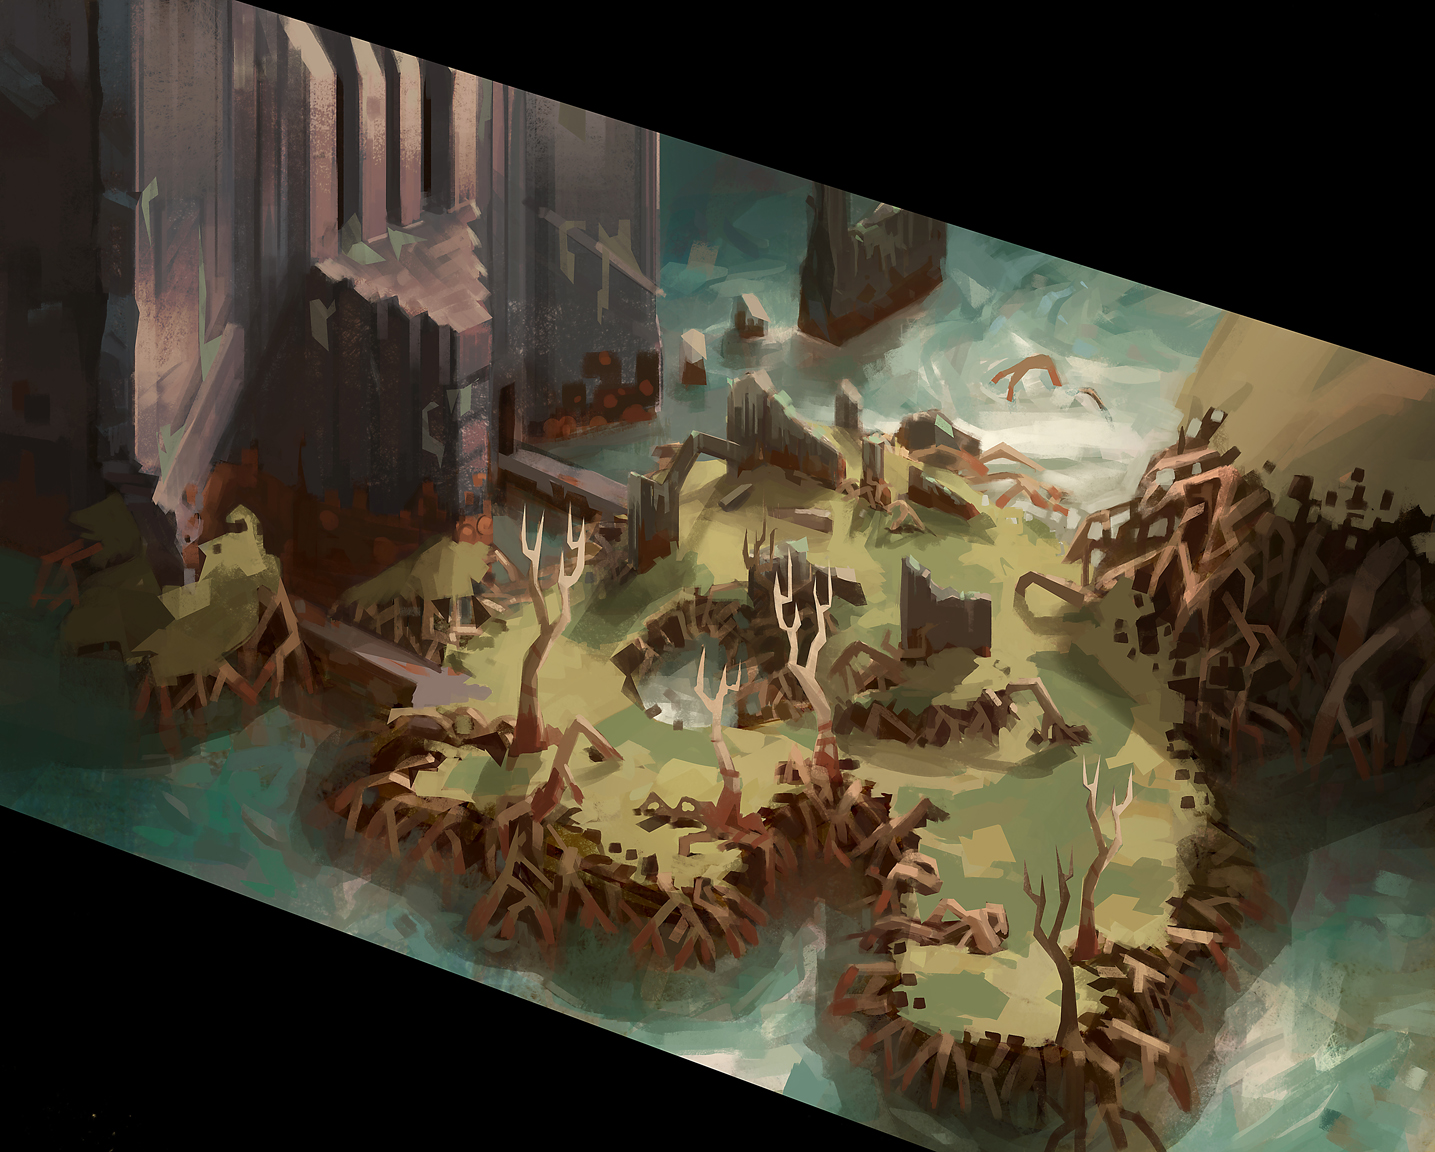 Biome_Mangroves03_closedKeep.jpg